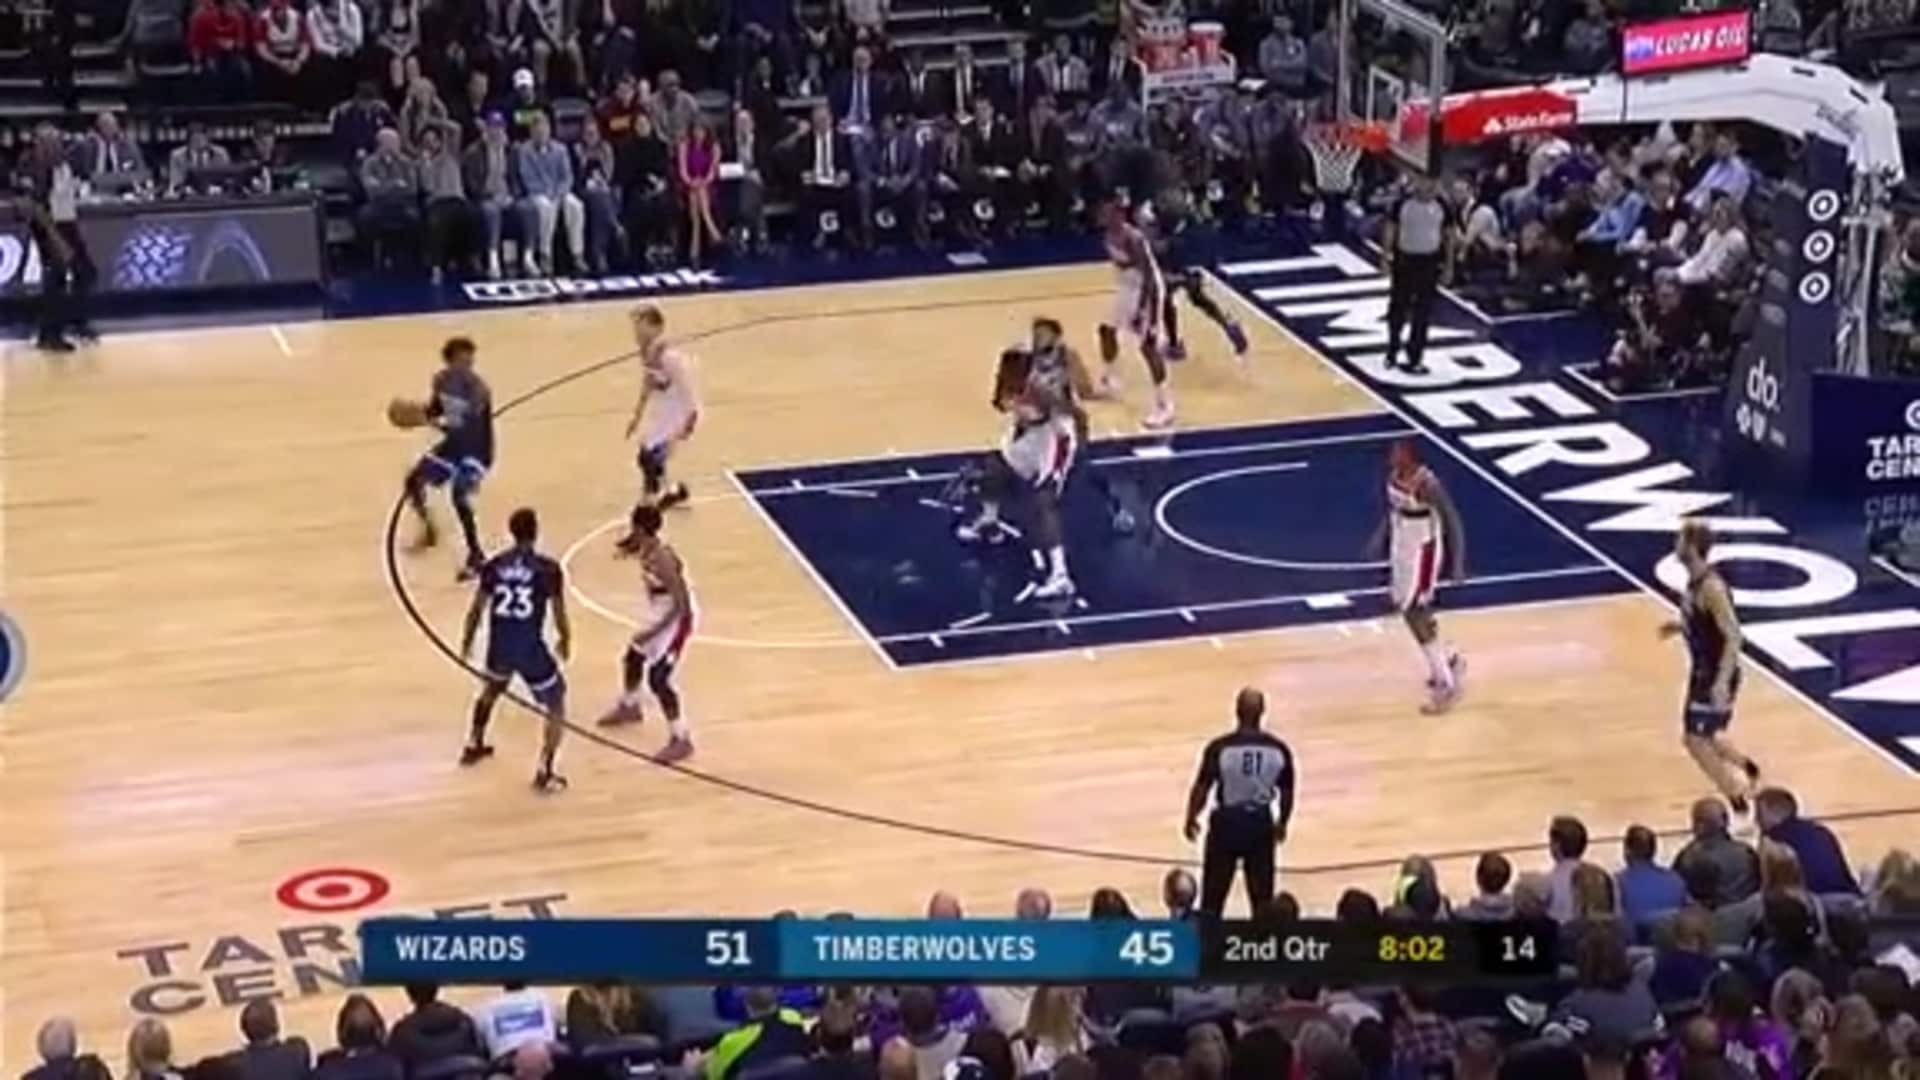 Highlights | Karl-Anthony Towns 36 Points And 10 Rebounds vs. Wizards (11.15.19)